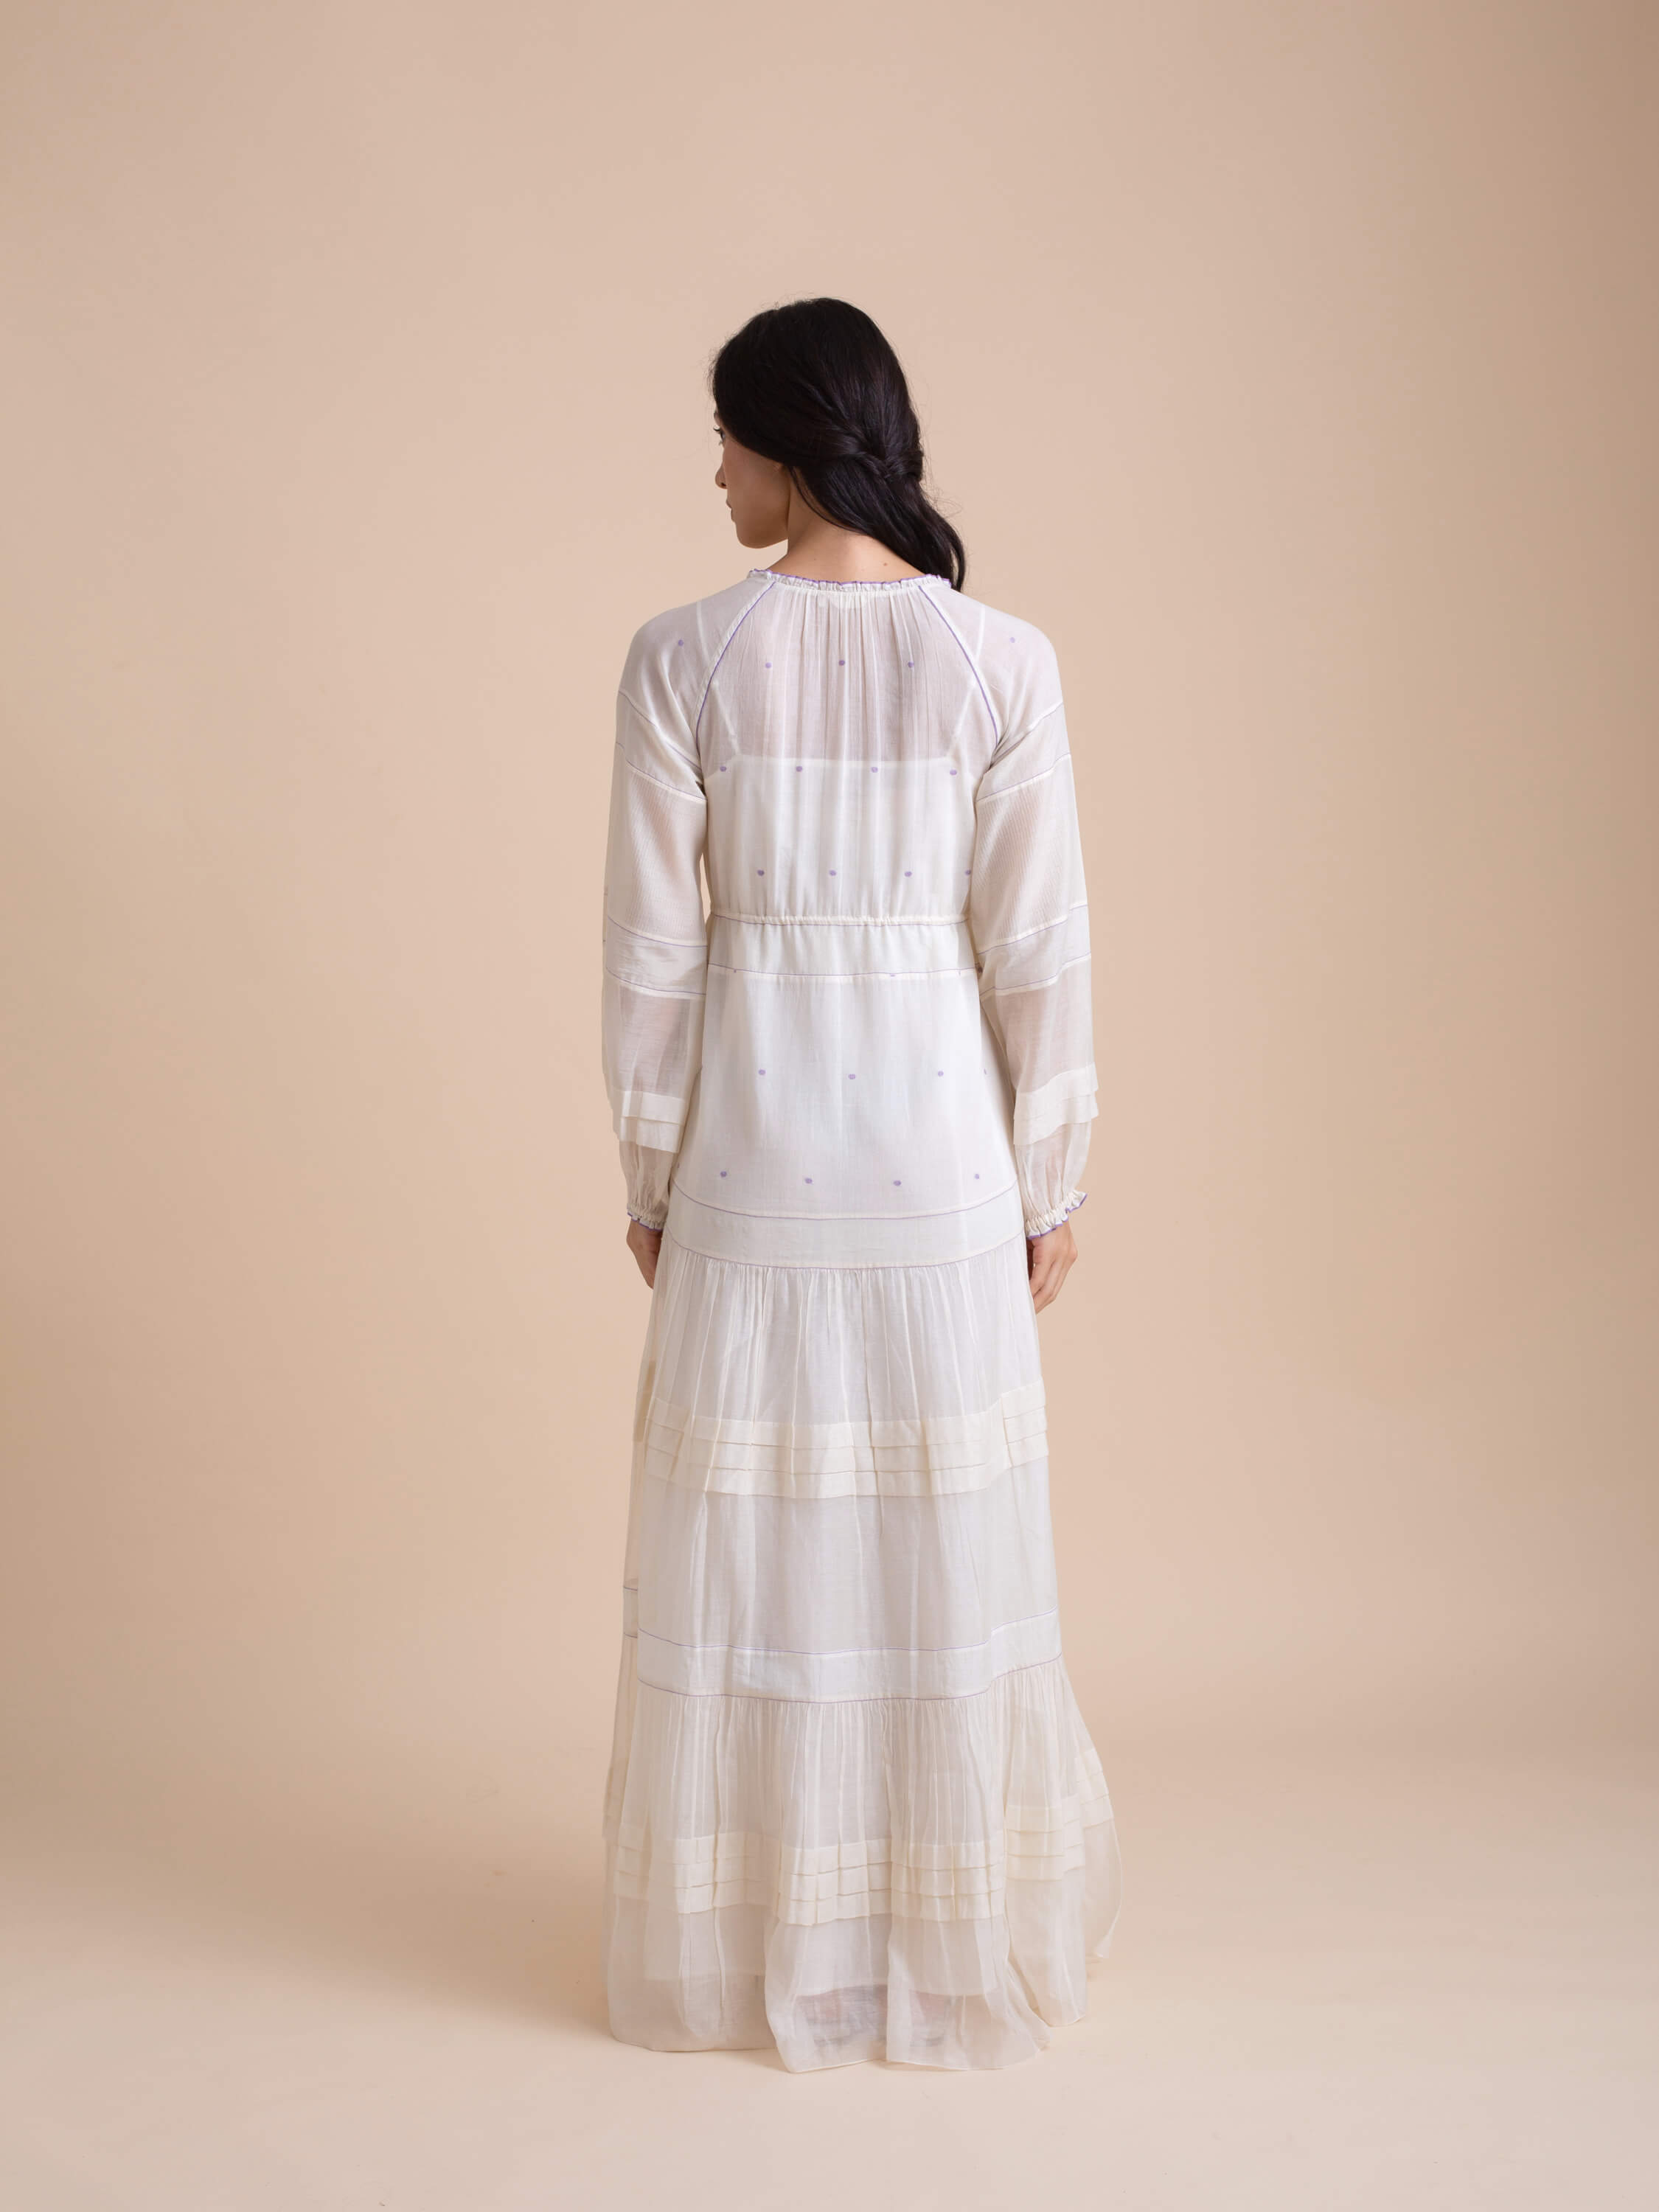 Potpourri Maxi Dress - BunaStudio